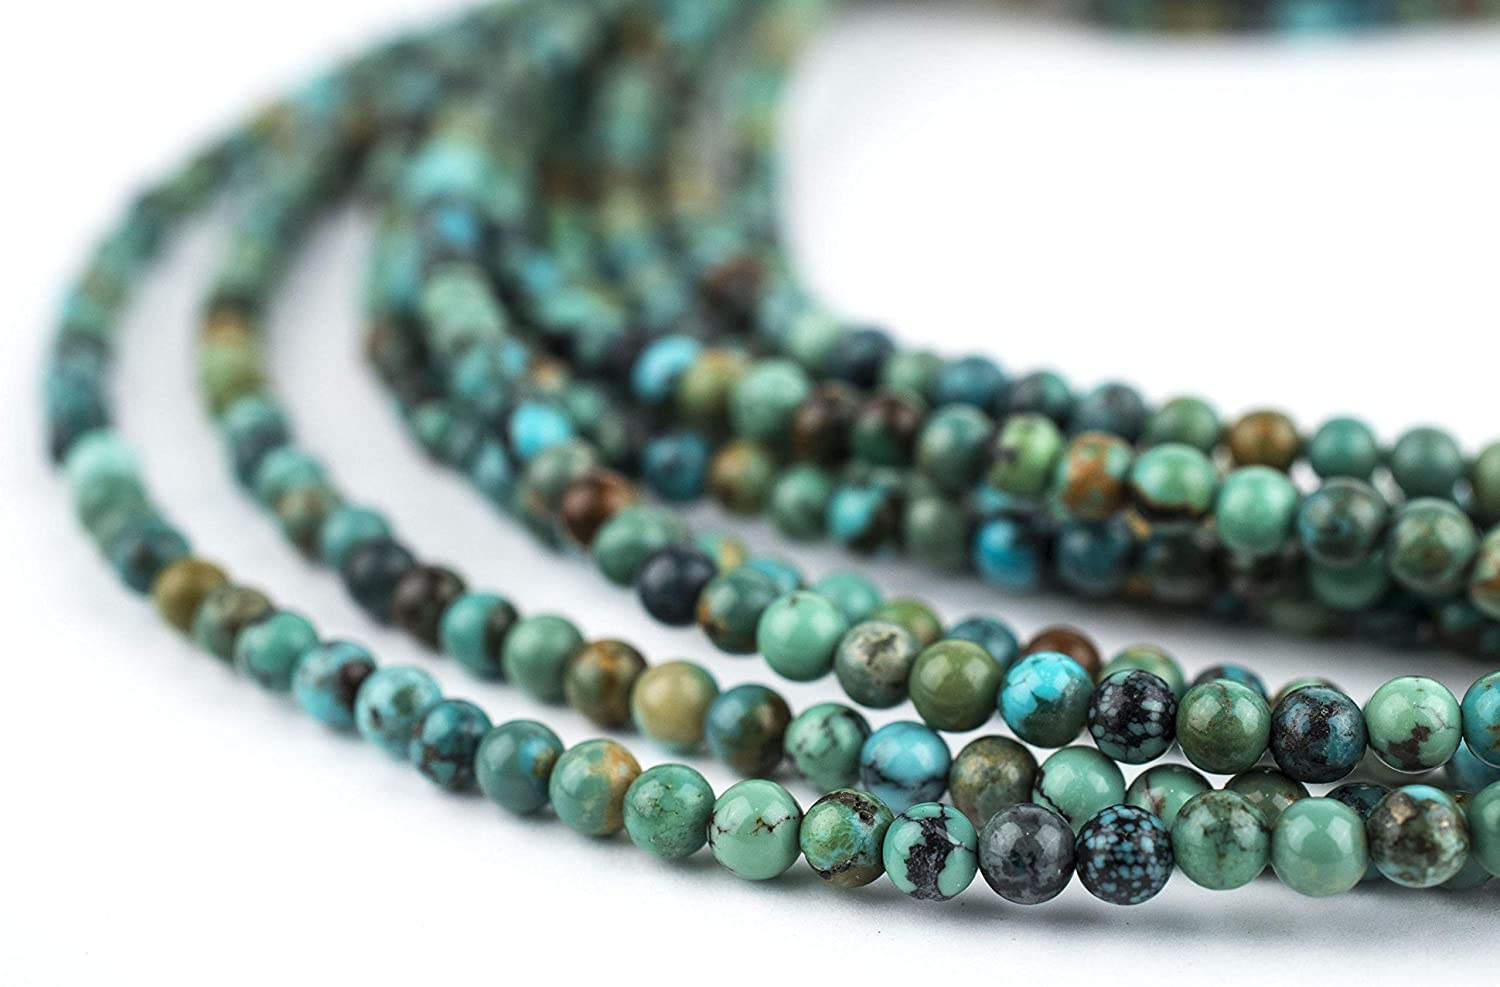 Natural Turquoise Gemstone Pebble Beads 140-6x4mm  Jewelry Supplies  SKU-GM-25-T